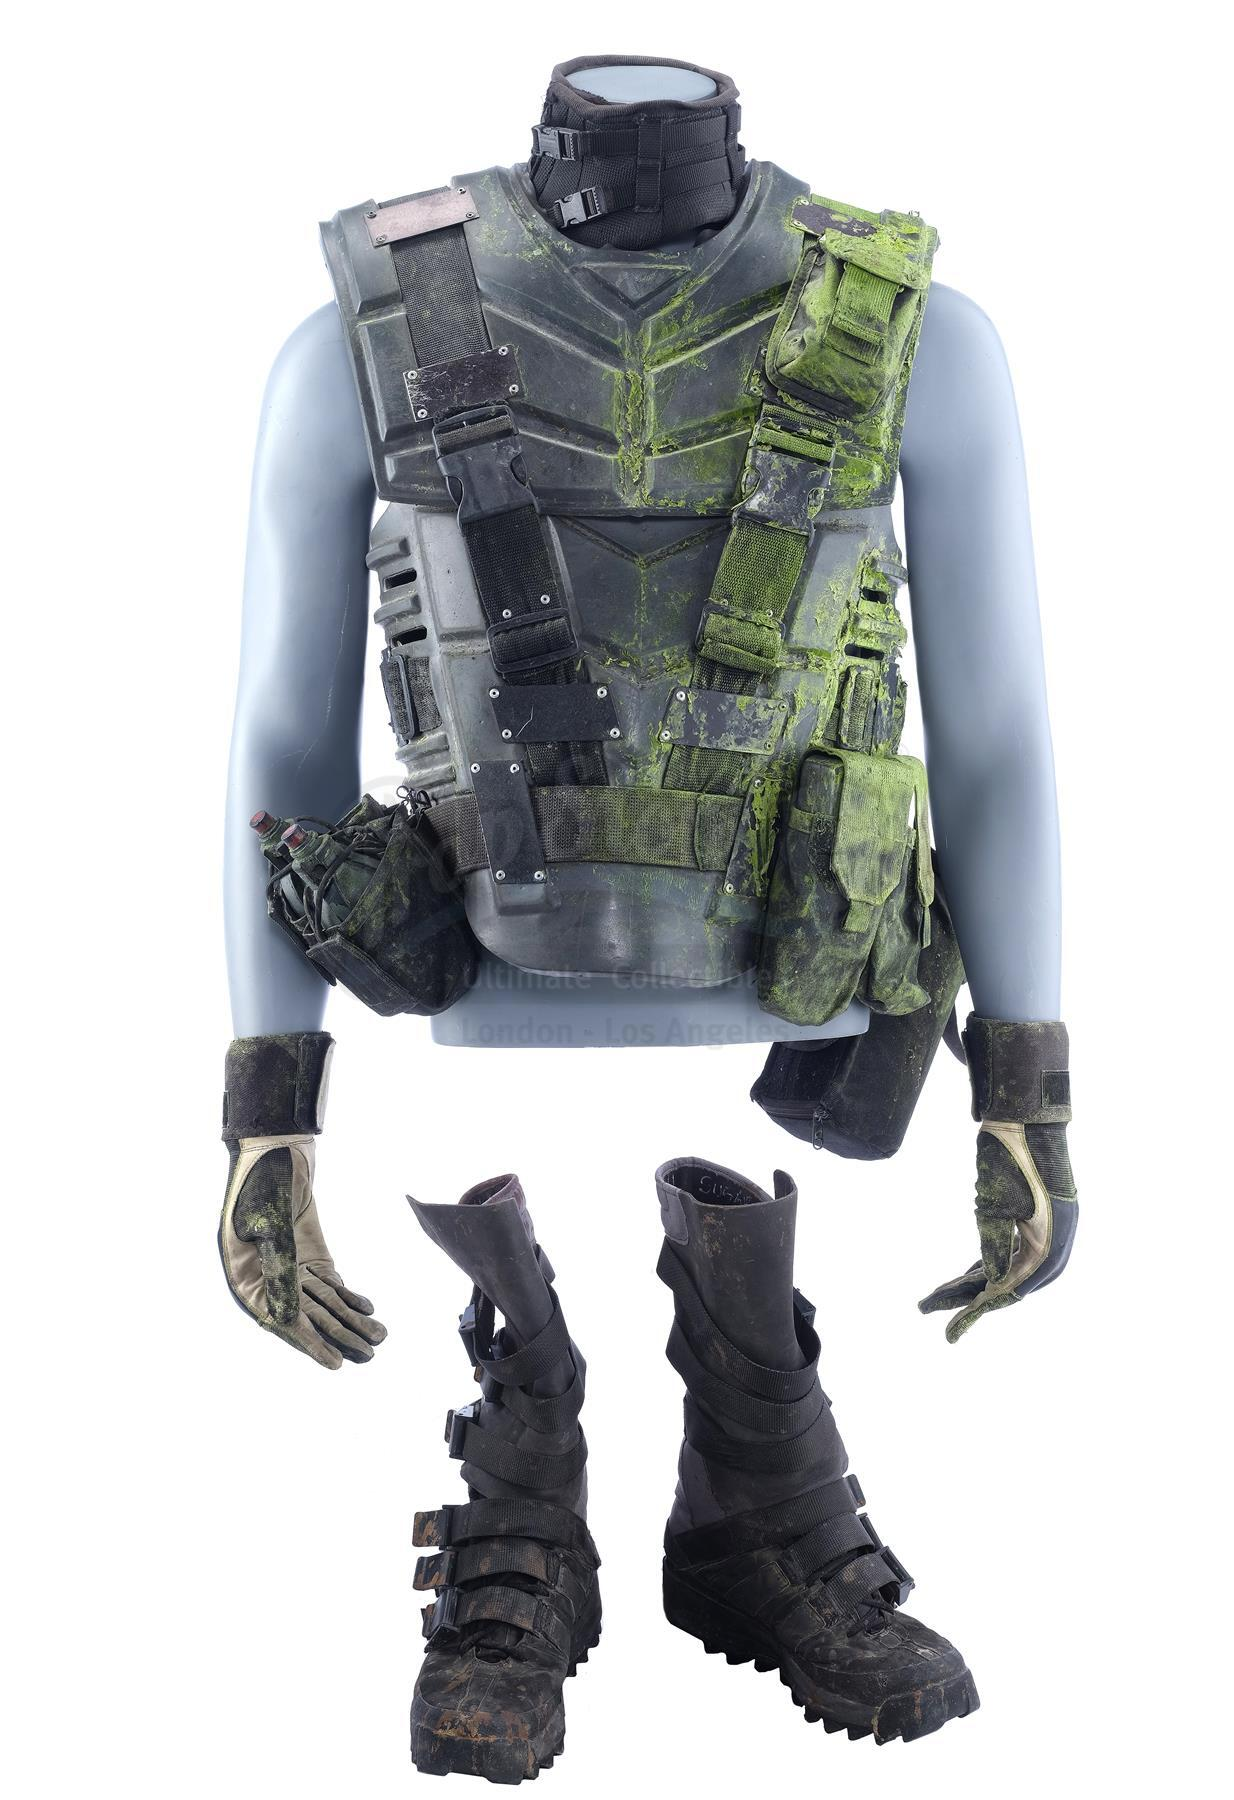 Lot # 352: STARSHIP TROOPERS - Sugar Watkins' (Seth Gilliam) Bloodied Mobile Infantry Armor